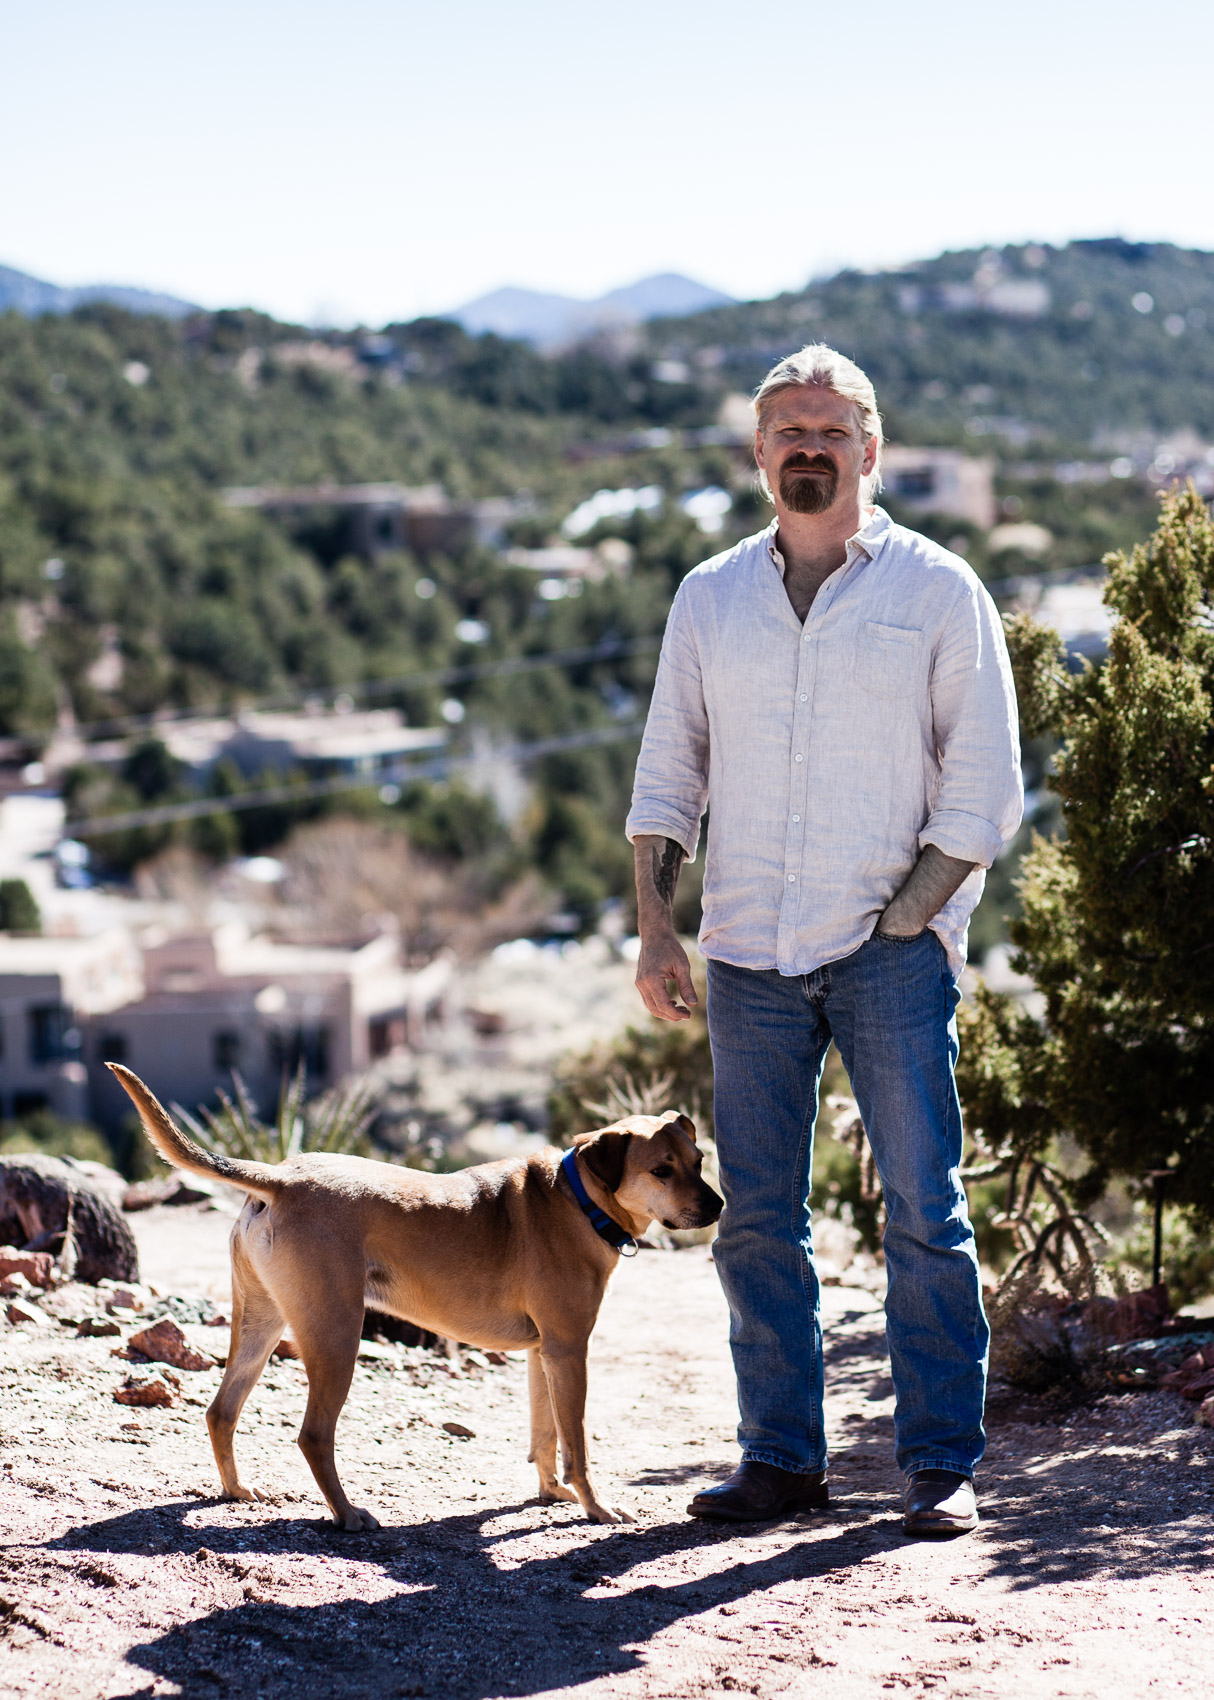 Marcus J. Hamilton, postdoctorial fellow at Santa Fe Institute and his dog Moby /  brand eins Thema | PATRICK STRATTNER PHOTOGRAPHY